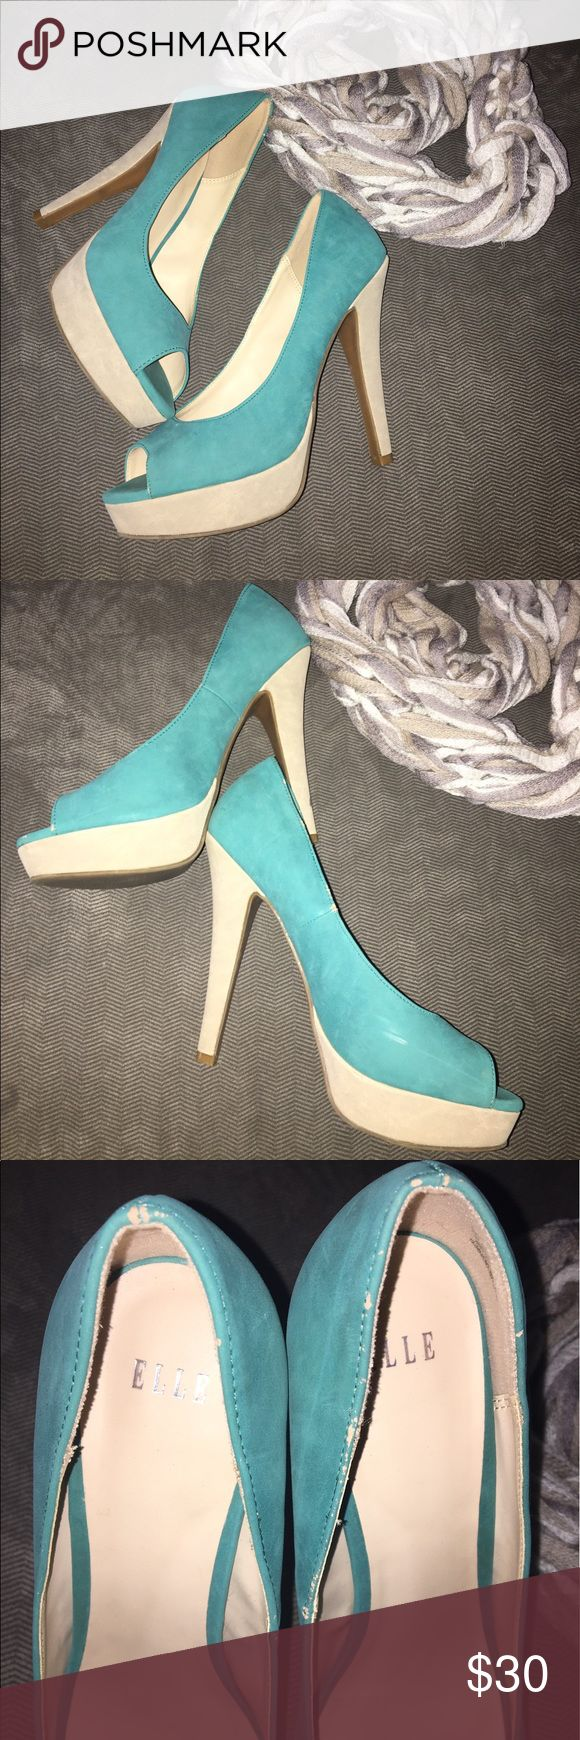 Elle Platform Pumps 👠 Used Condition, some peeling and cleaning needed (see pics) Very cute w/Suede like material in teal and tan colors. Platform front. Elle Shoes Heels